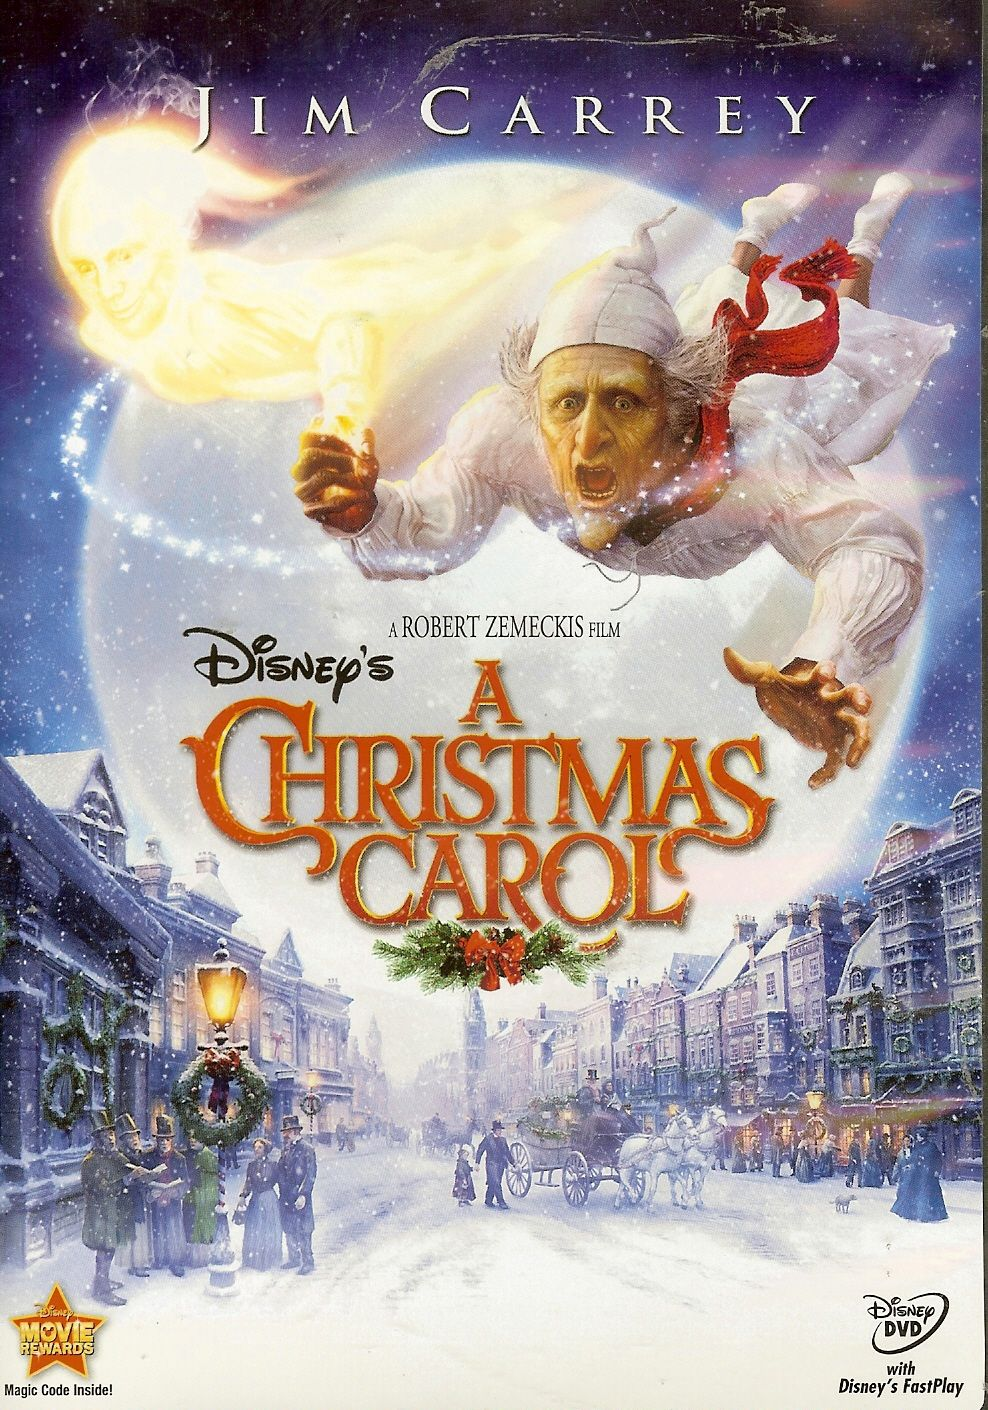 Disney's A Christmas Carol with Jim Carrey. Haven't seen this in years but would totally rewatch ...